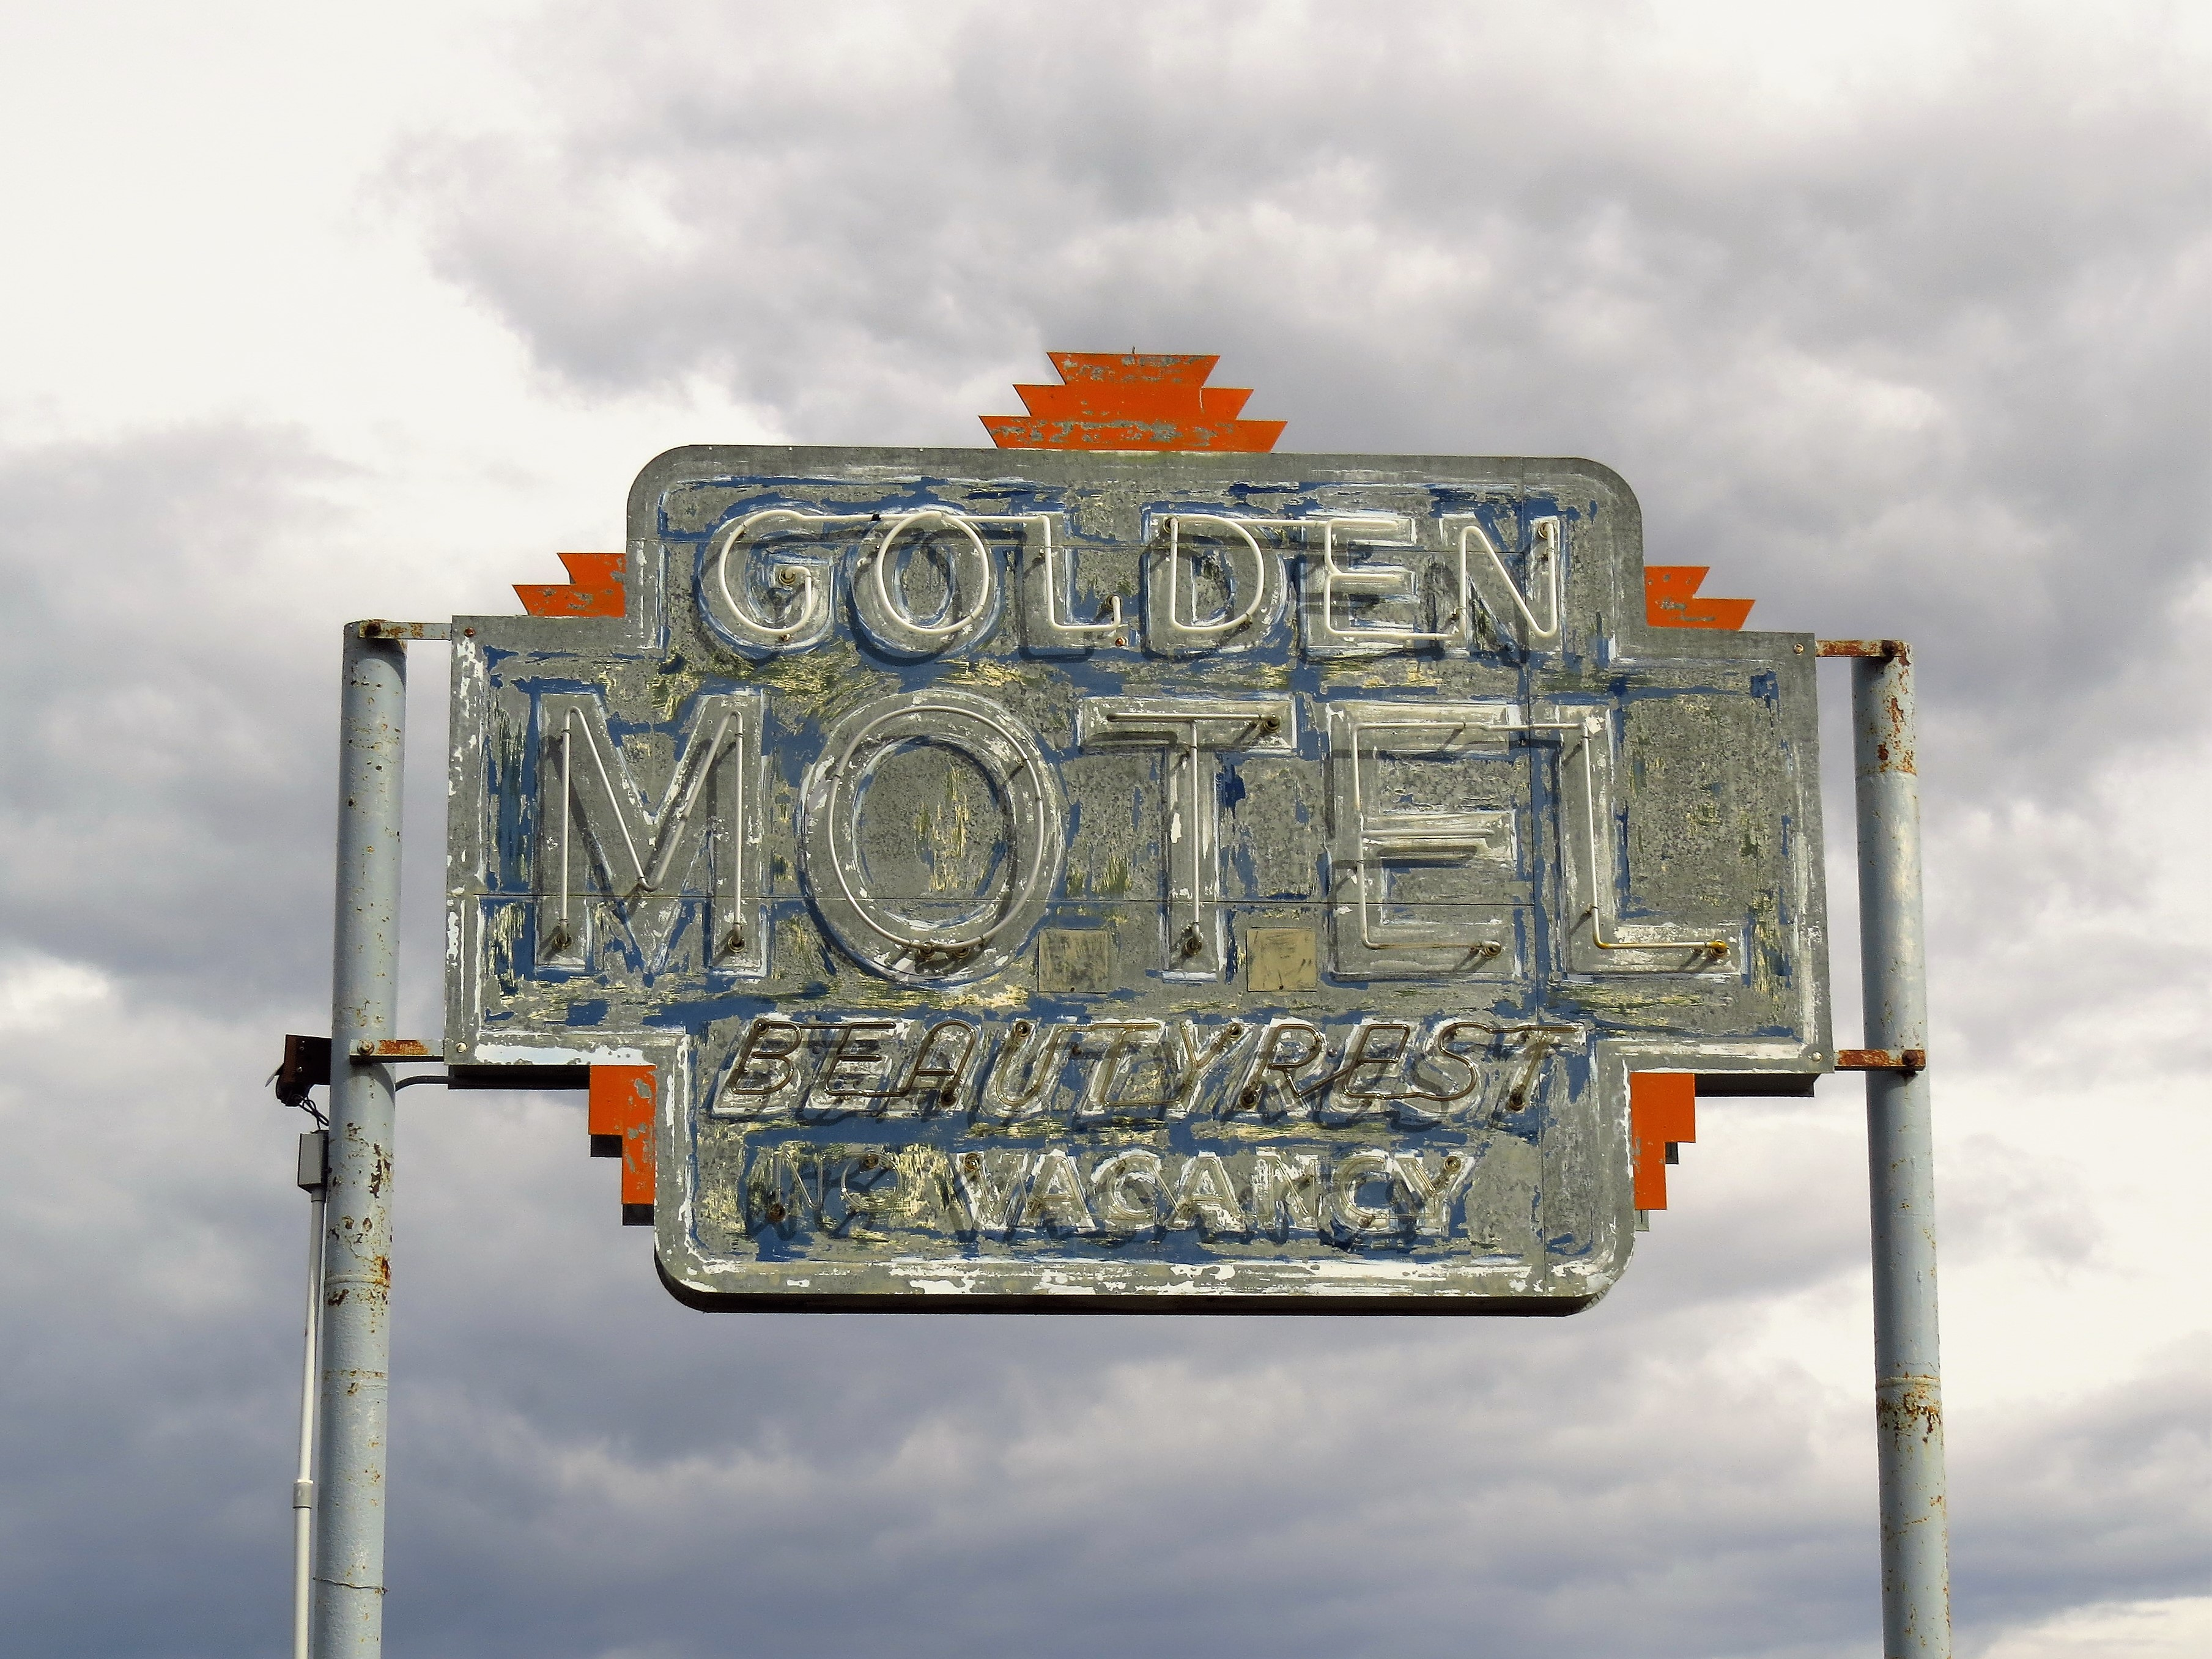 Golden Motel - Valmy, Nevada U.S.A. - May 24, 2019